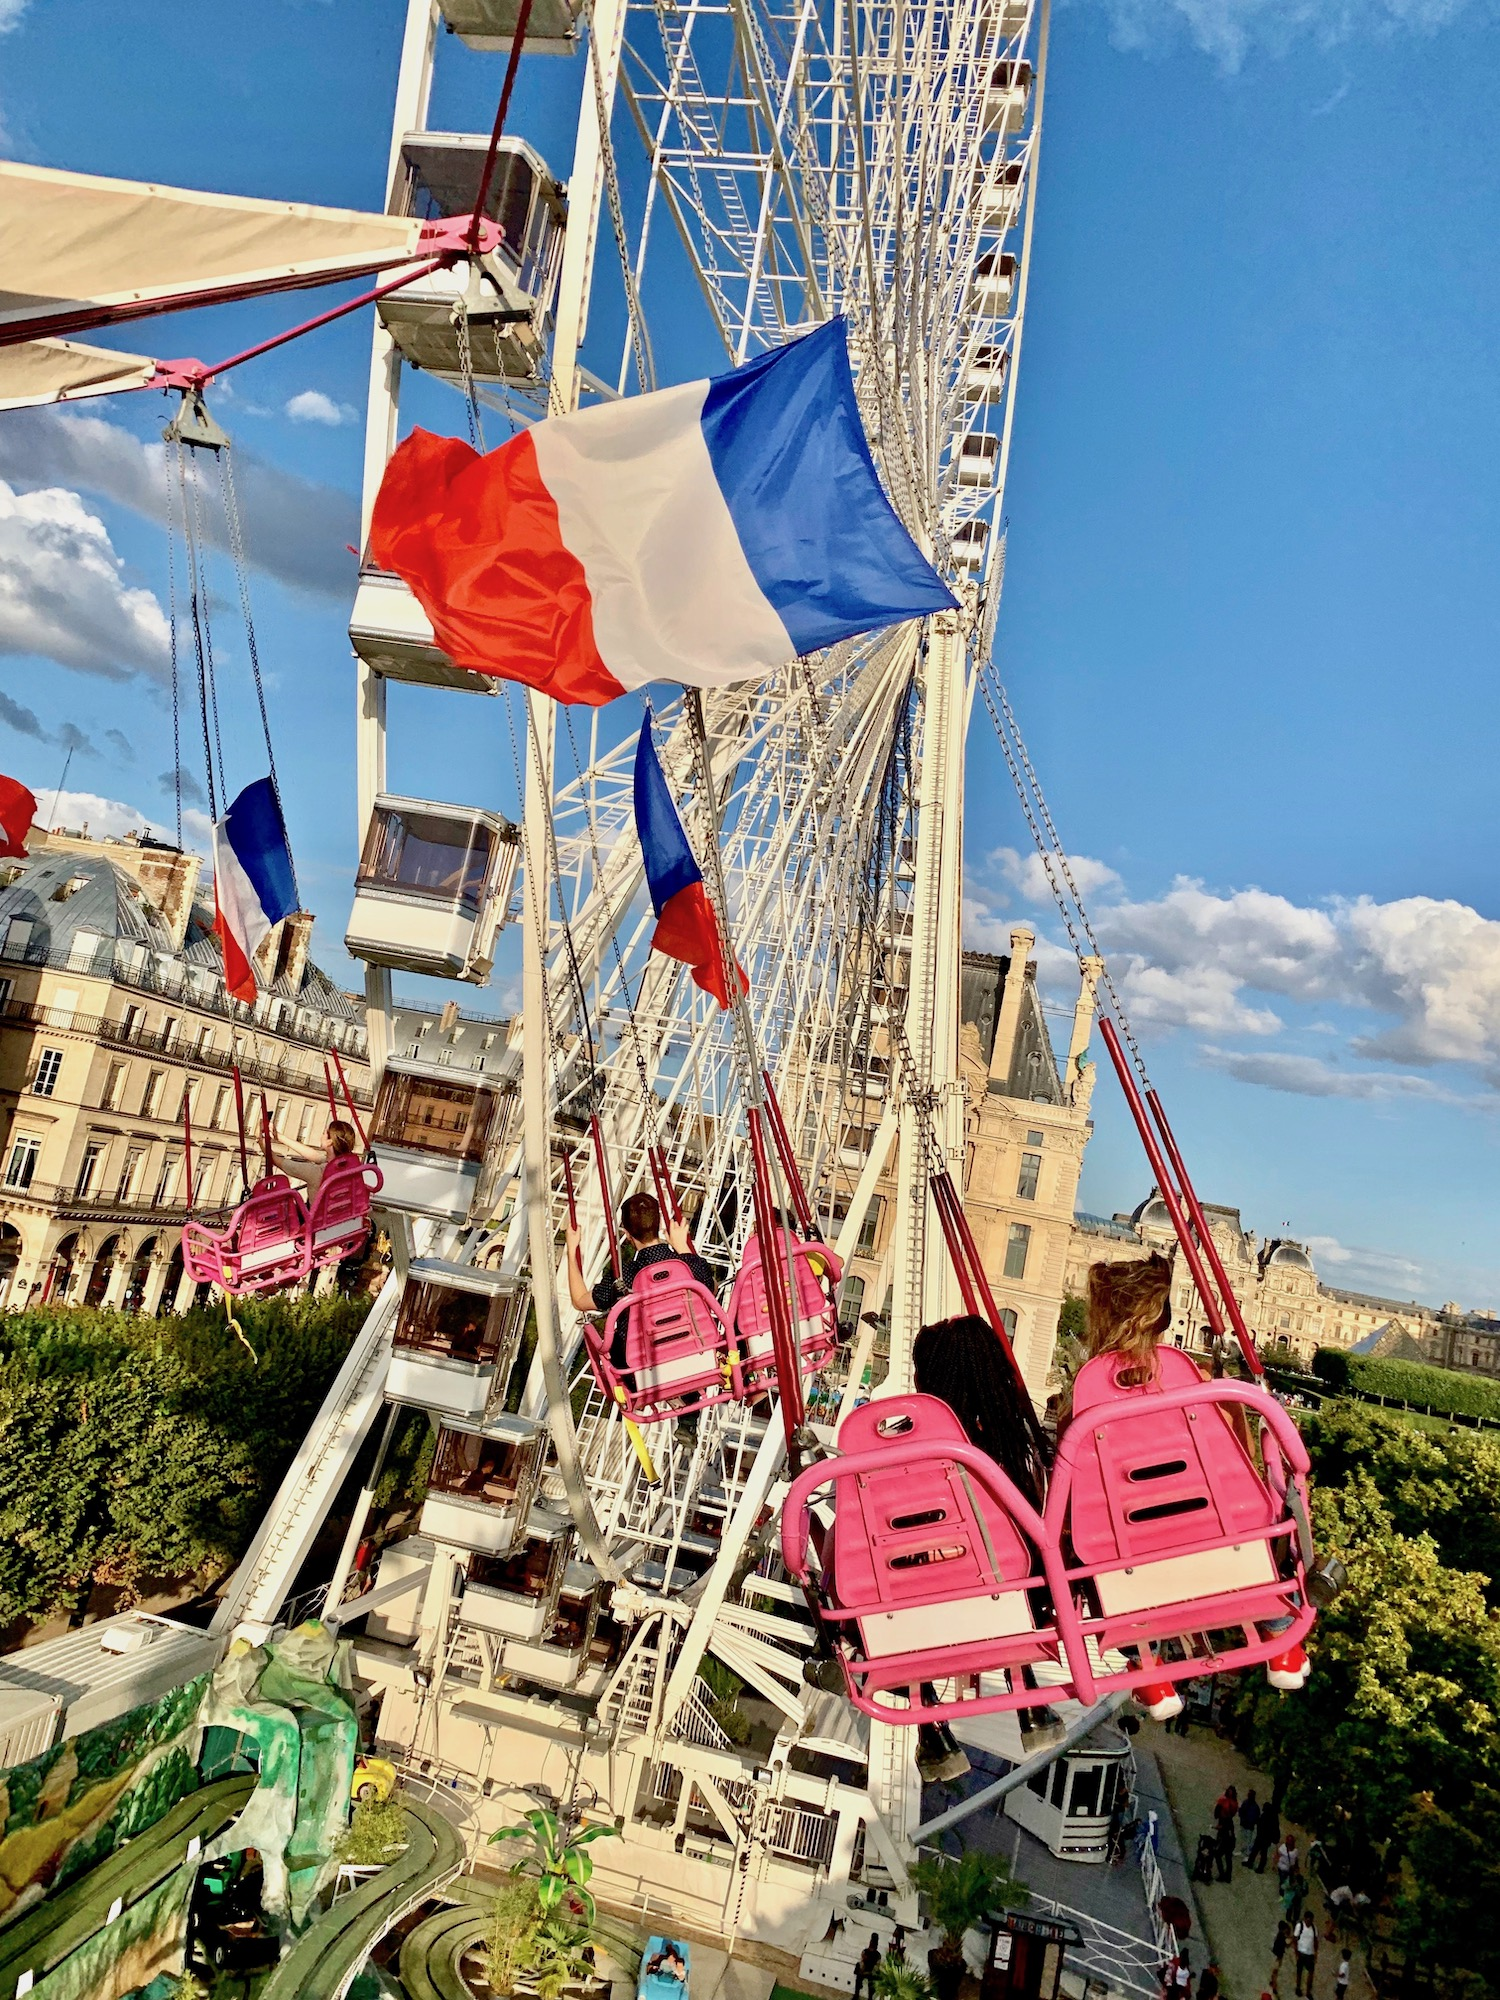 Fete des Tuileries Swing